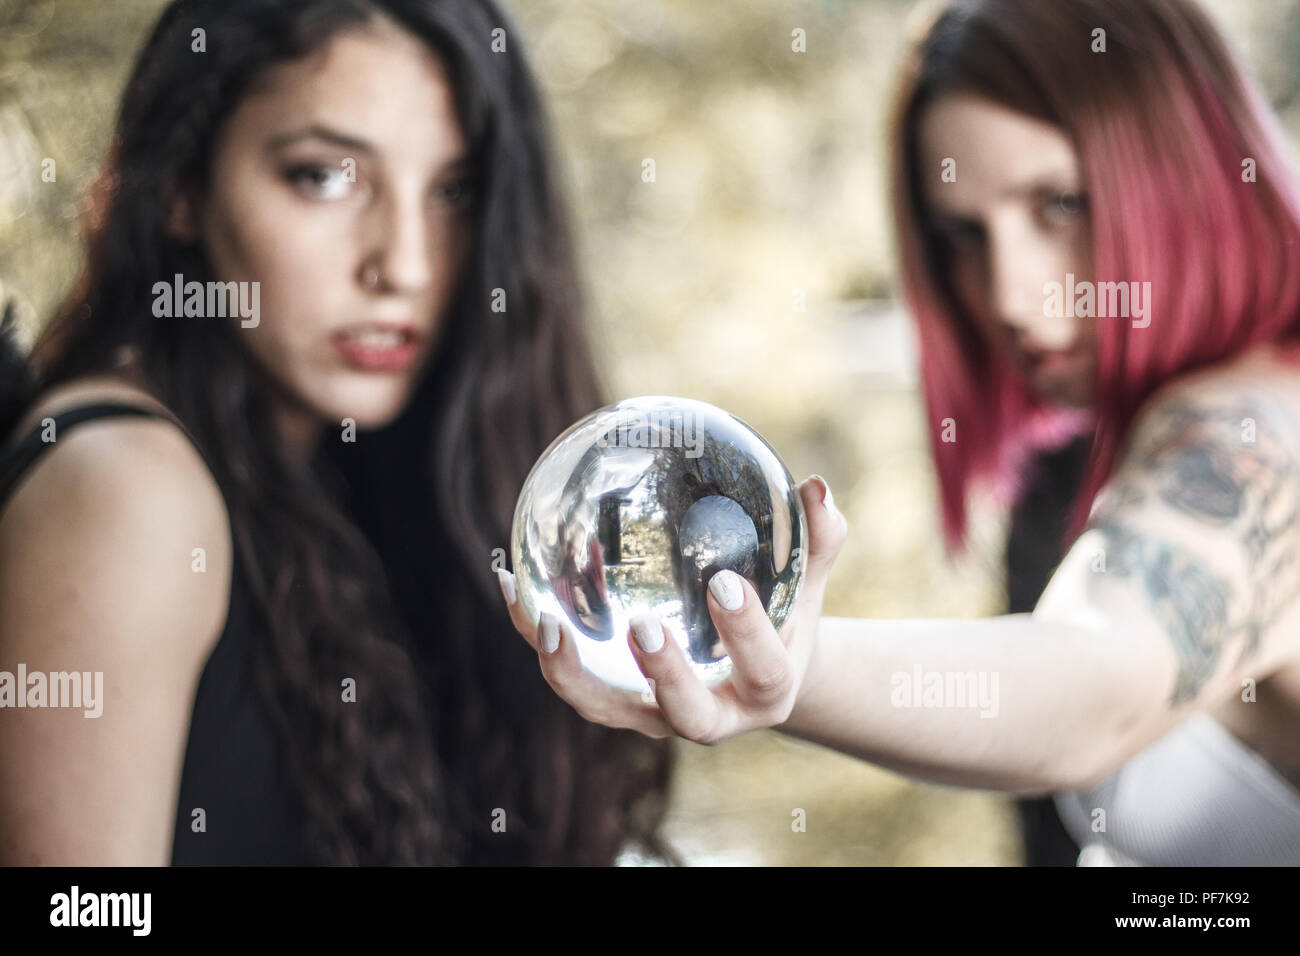 Two girls dressed in black and white are predicting the future with a crystal ball at the pier of a forest. - Stock Image